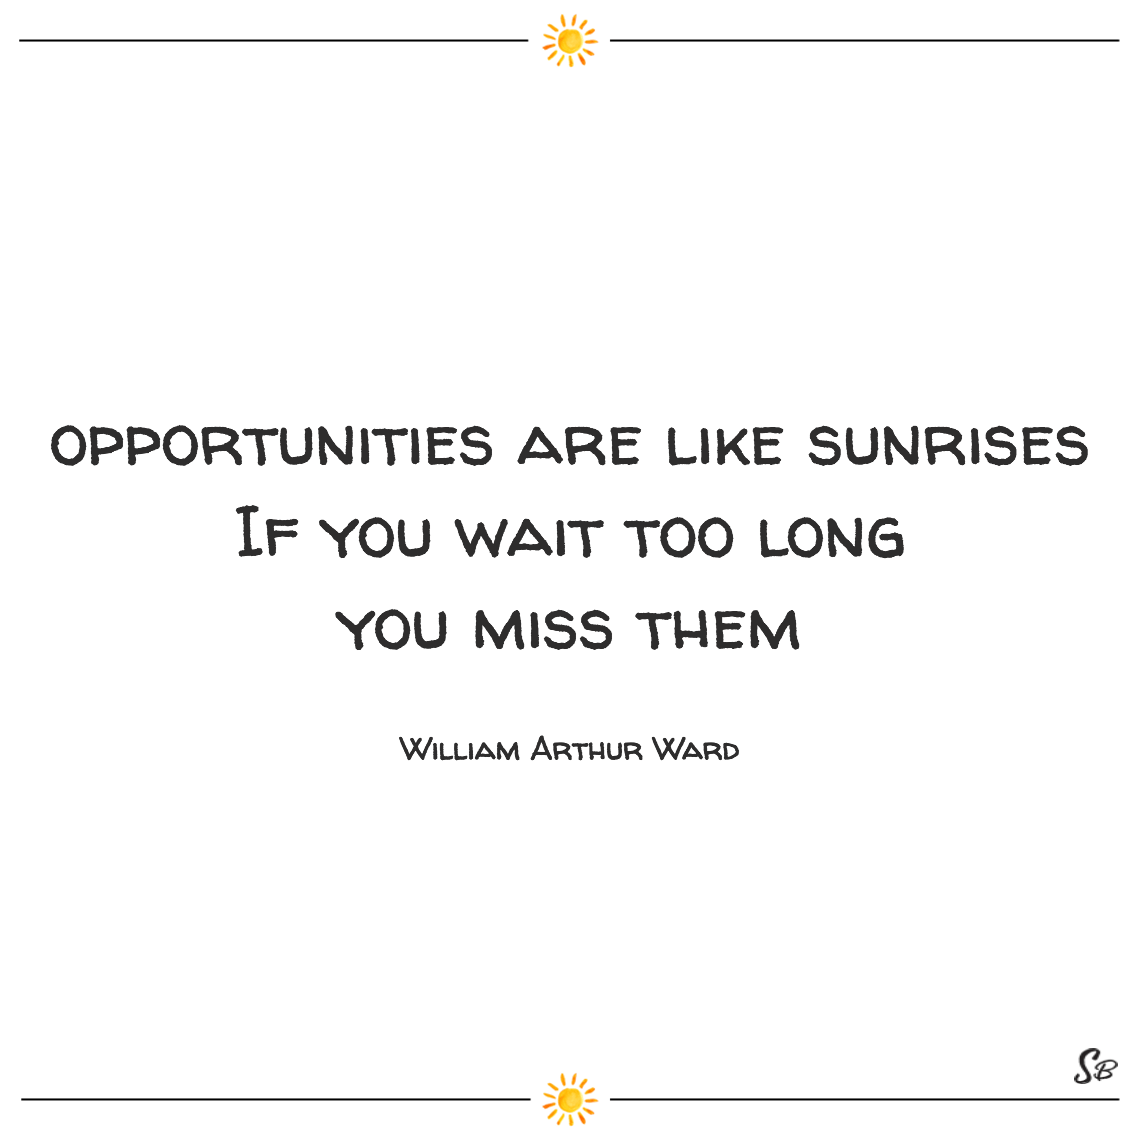 Opportunities are like sunrises if you wait too long you miss them william arthur ward